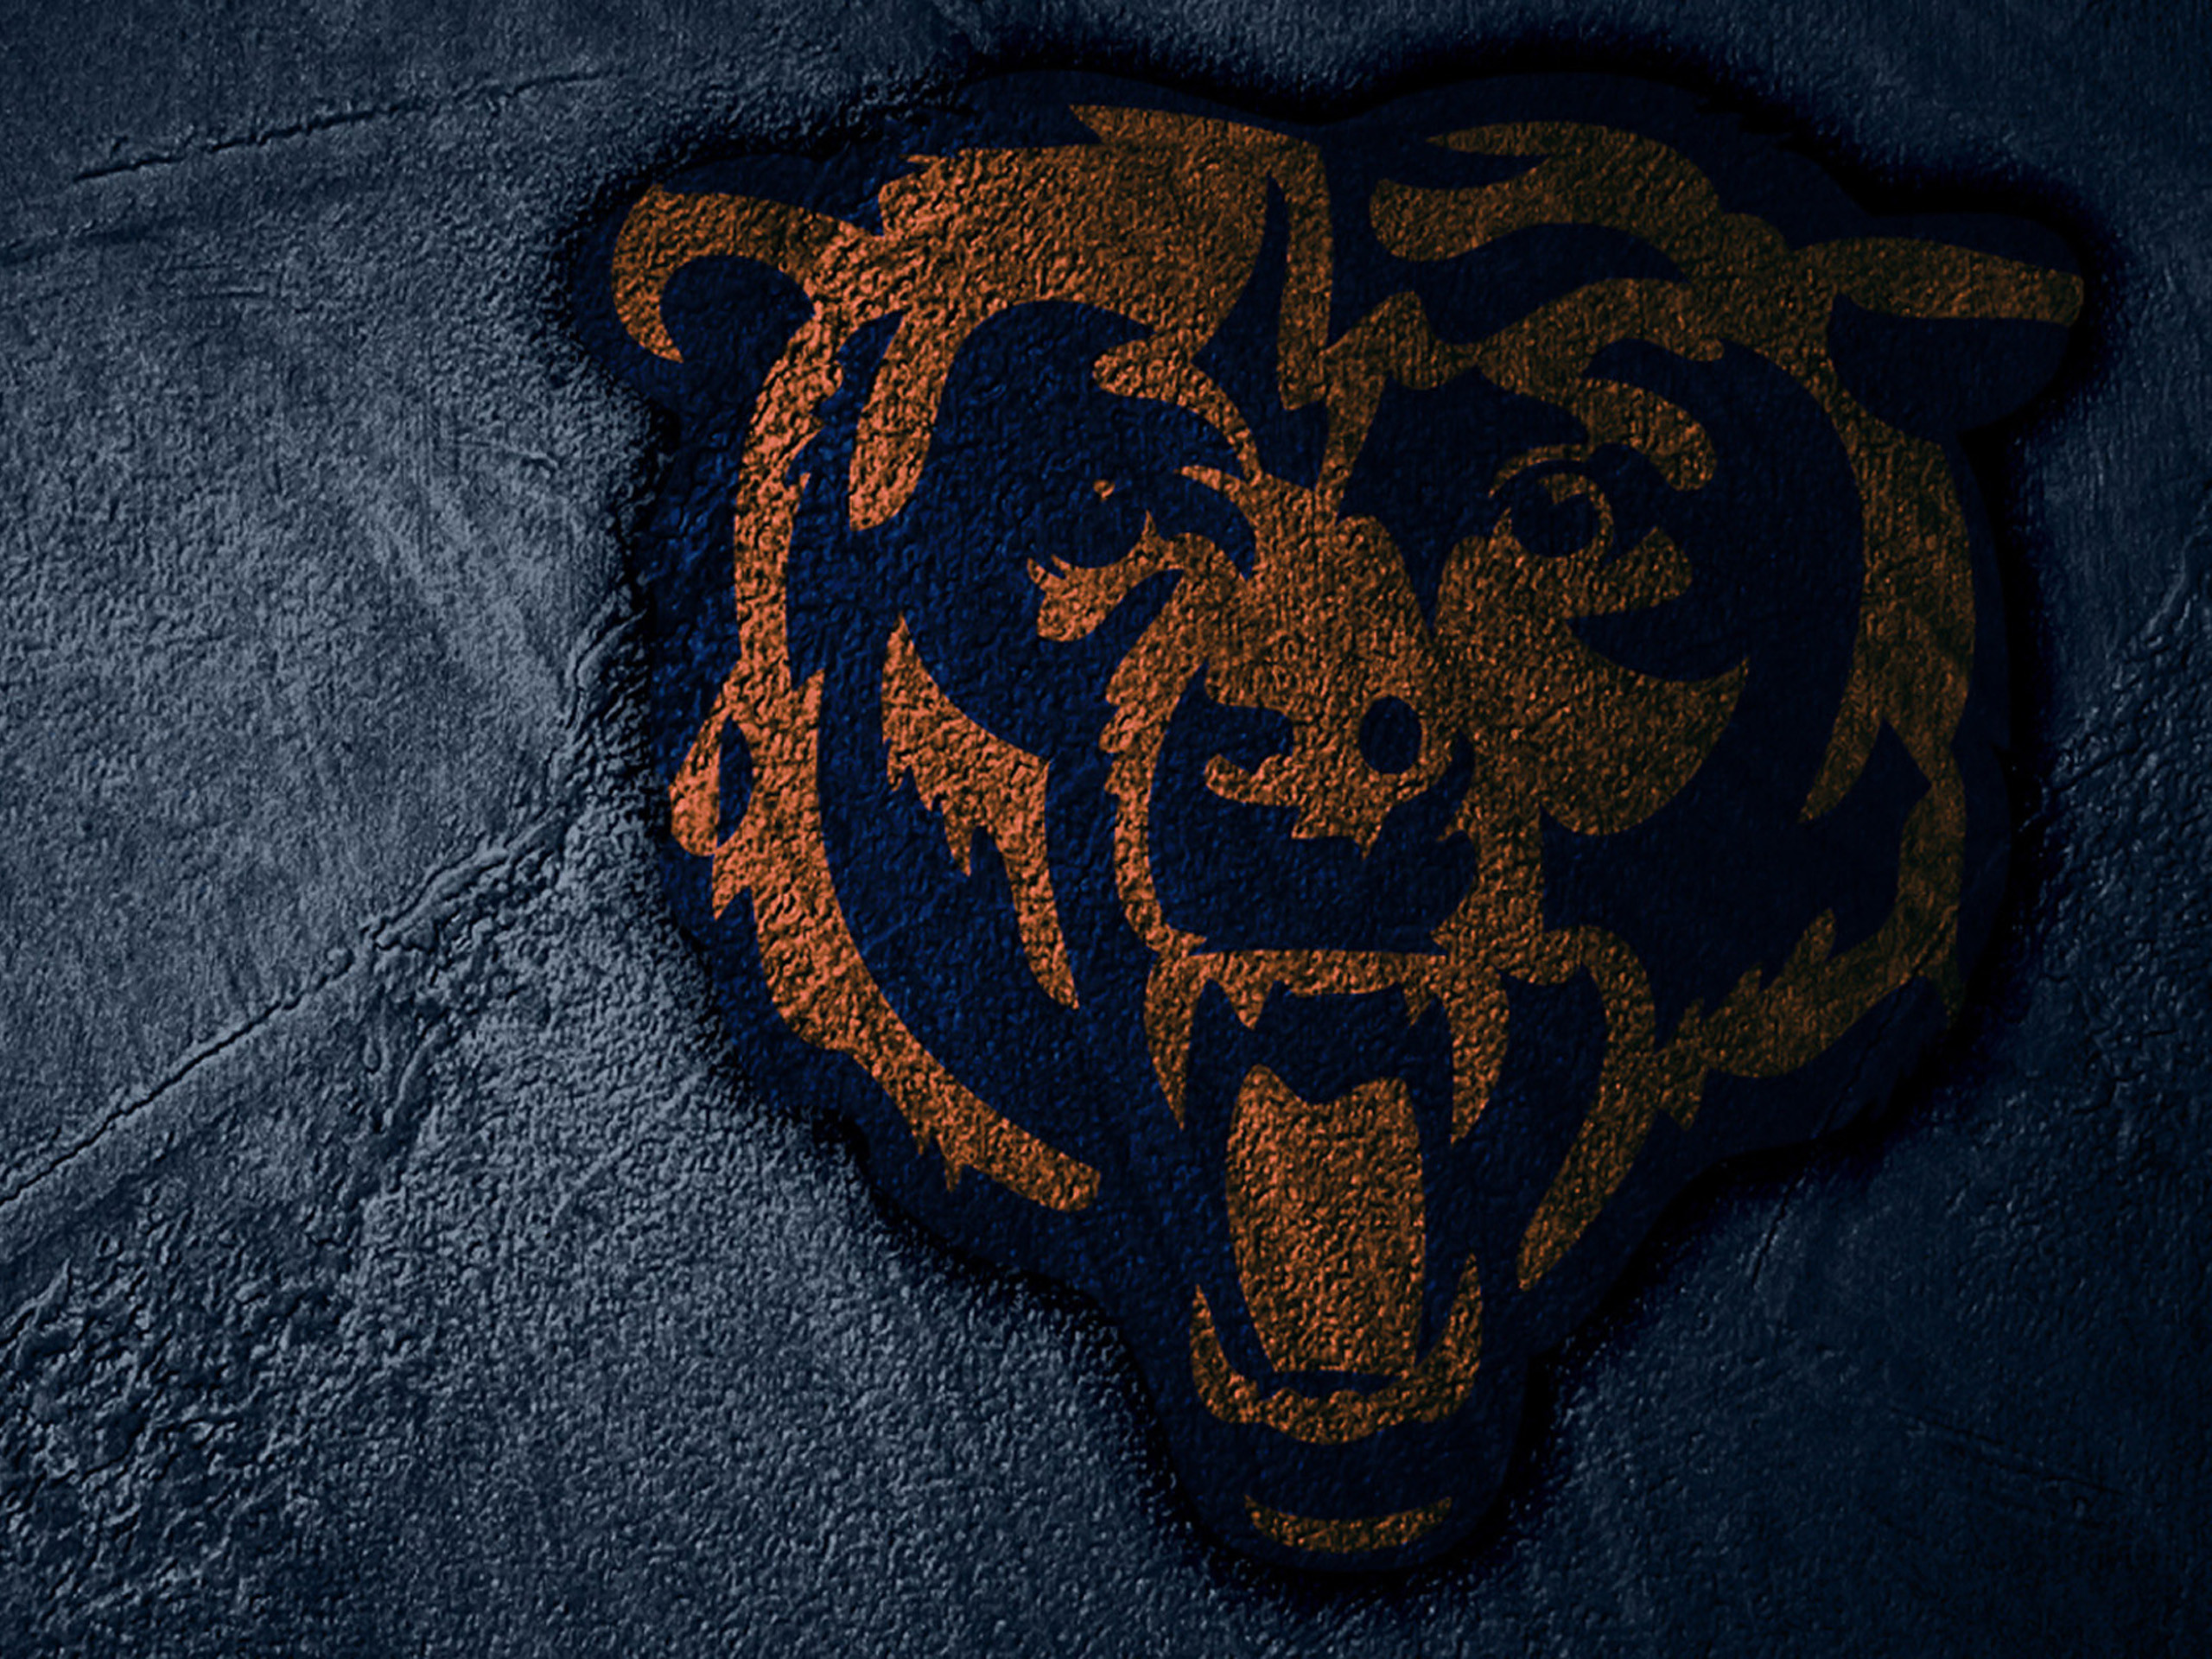 chicago bears backgrounds Chicago Bears Wallpaper by Geosammy | HD  Wallpapers | Pinterest | Hd wallpaper and Wallpaper